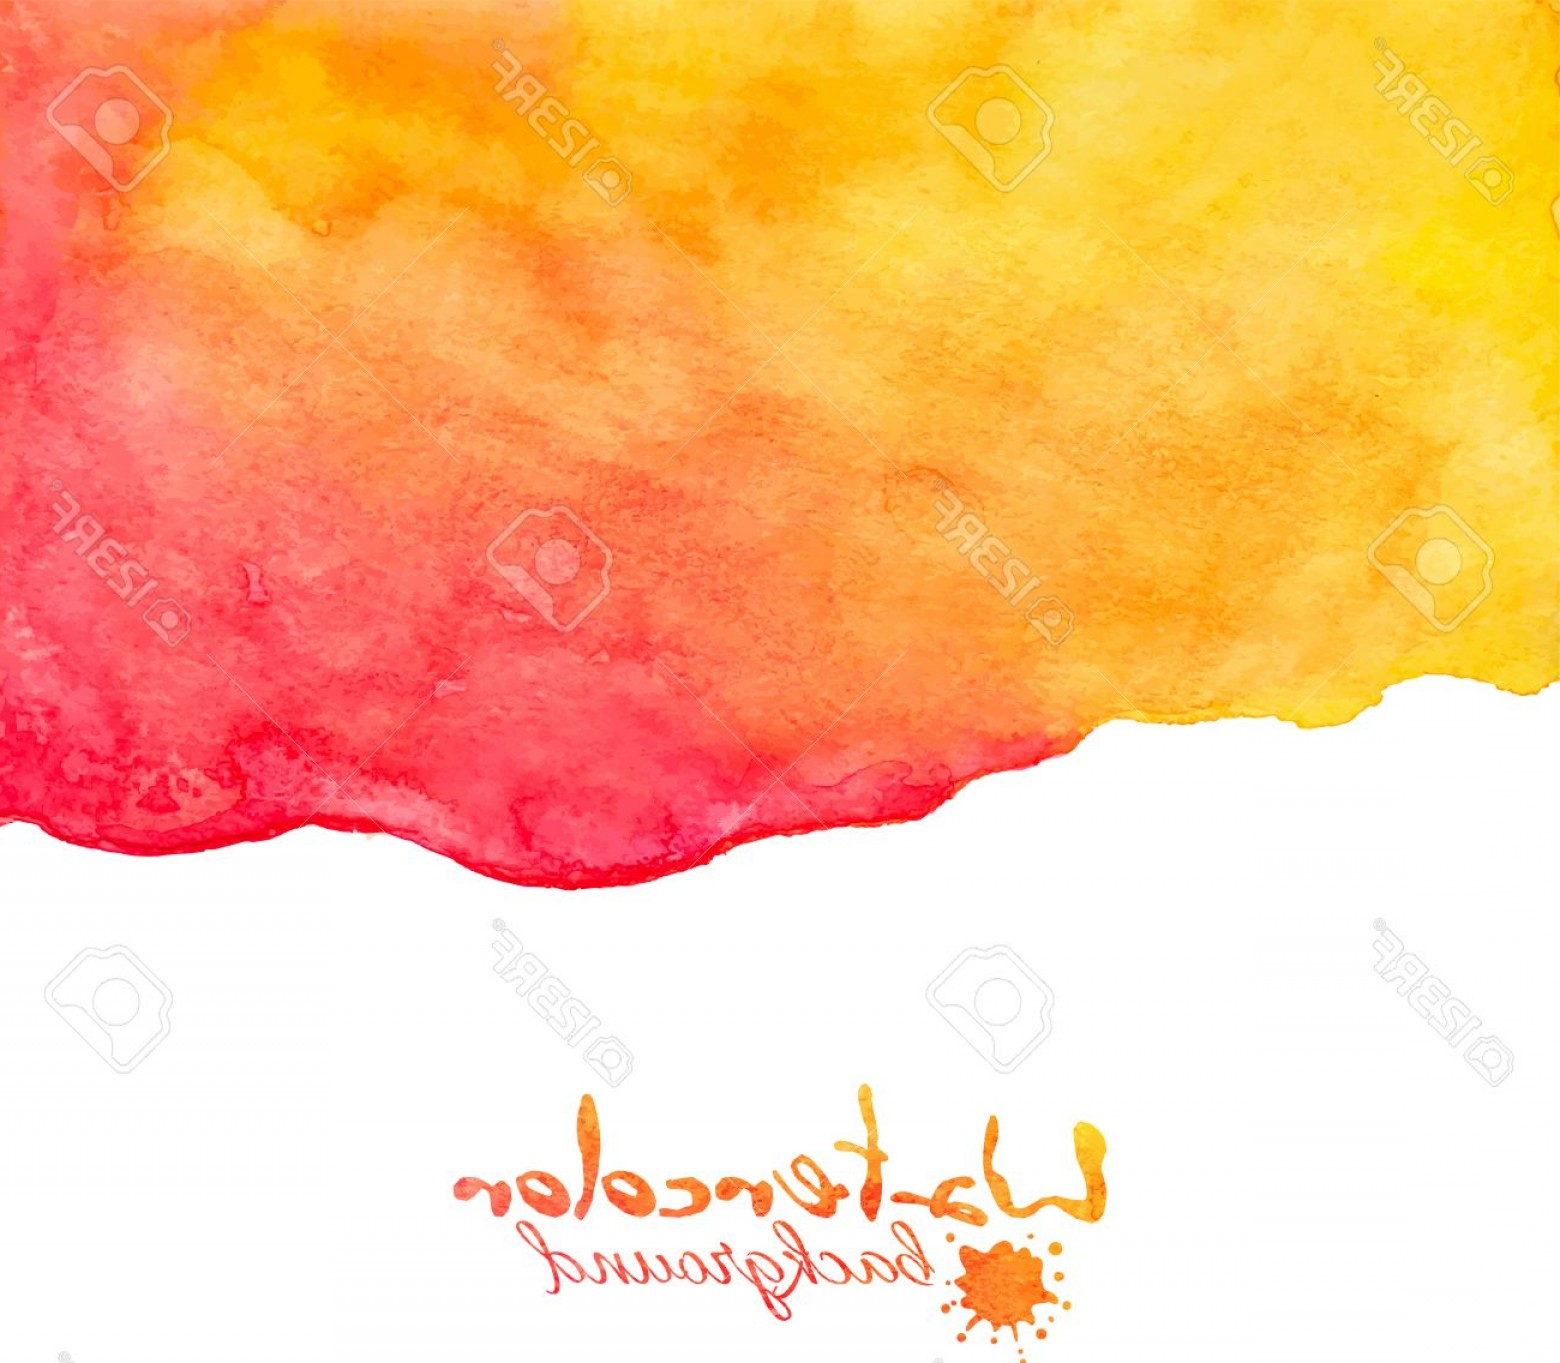 Watercolor Vector Background Free: Photostock Vector Orange And Red Watercolor Vector Abstract Background